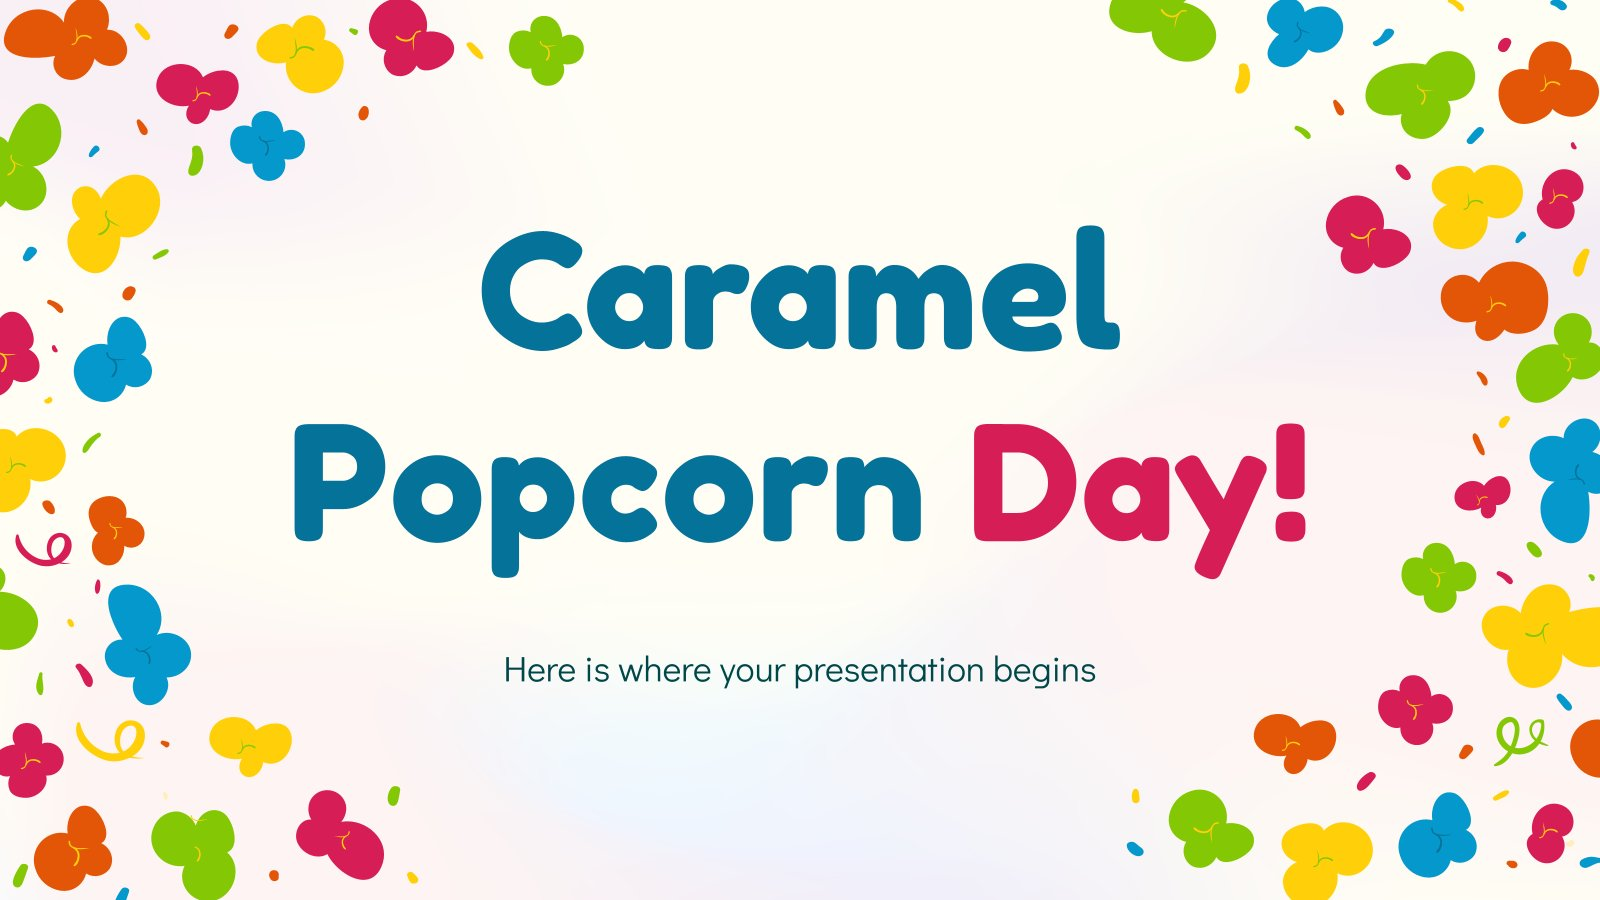 Caramel Popcorn Day! presentation template